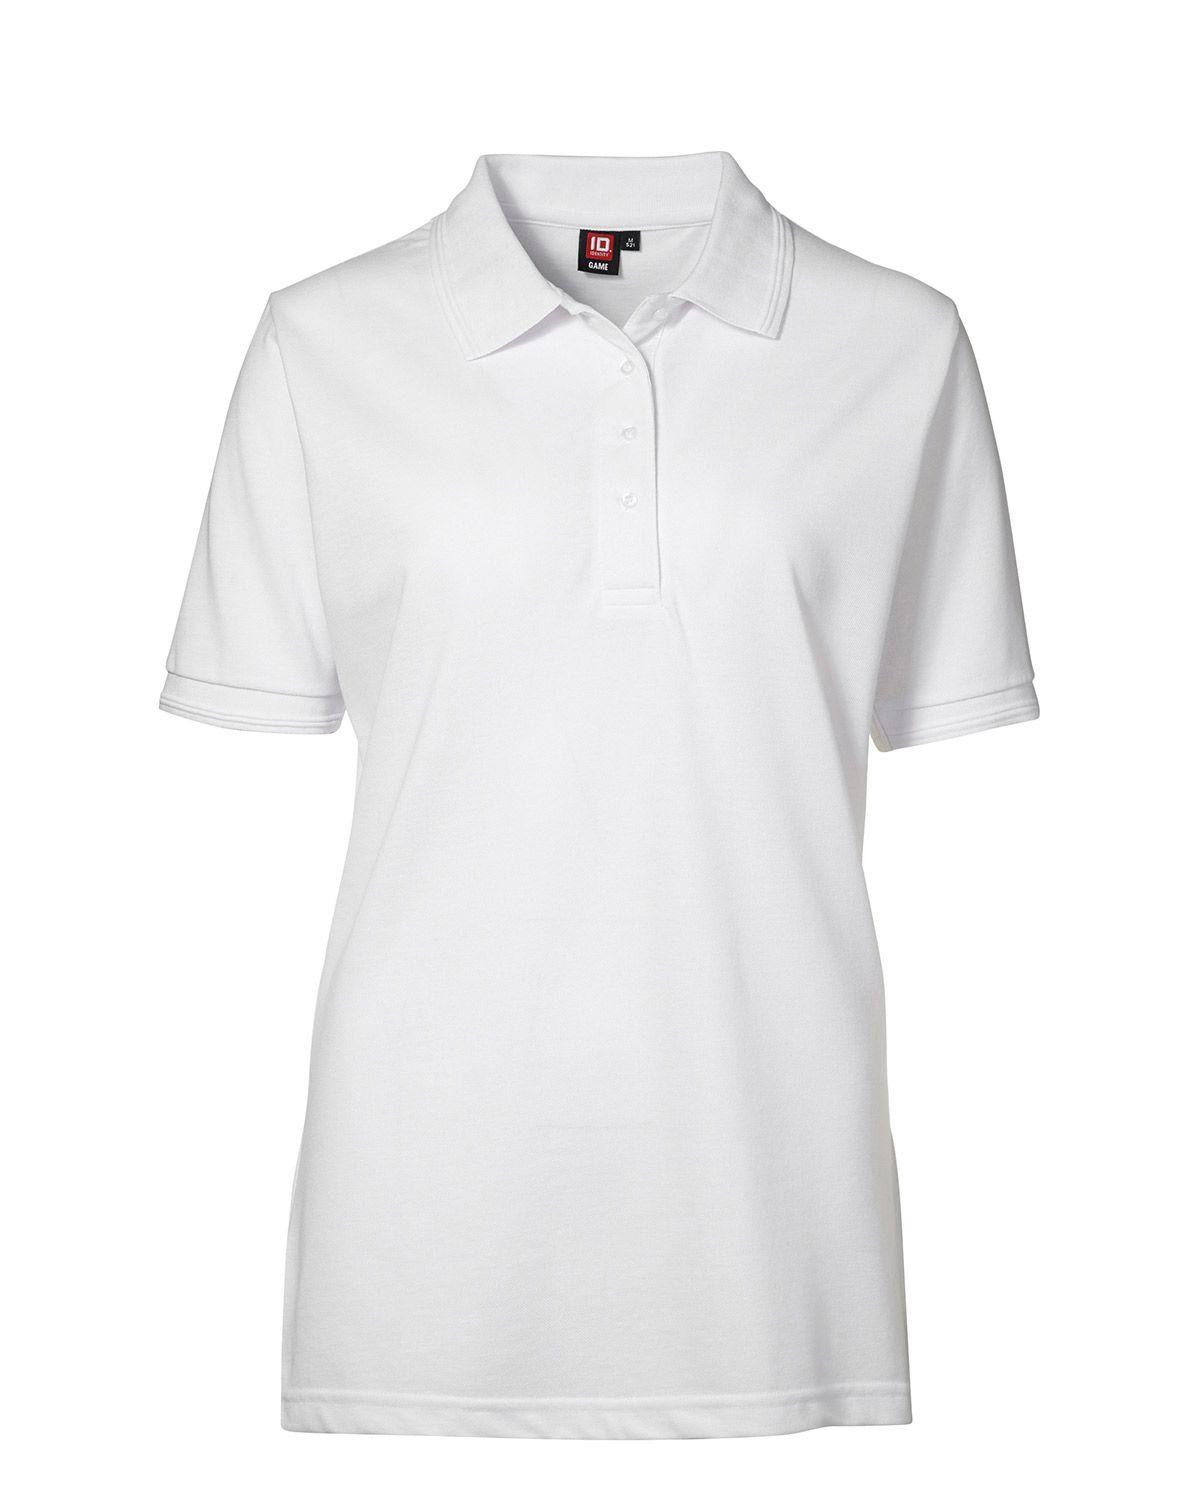 Image of   ID Klassisk Polo (Hvid, S)